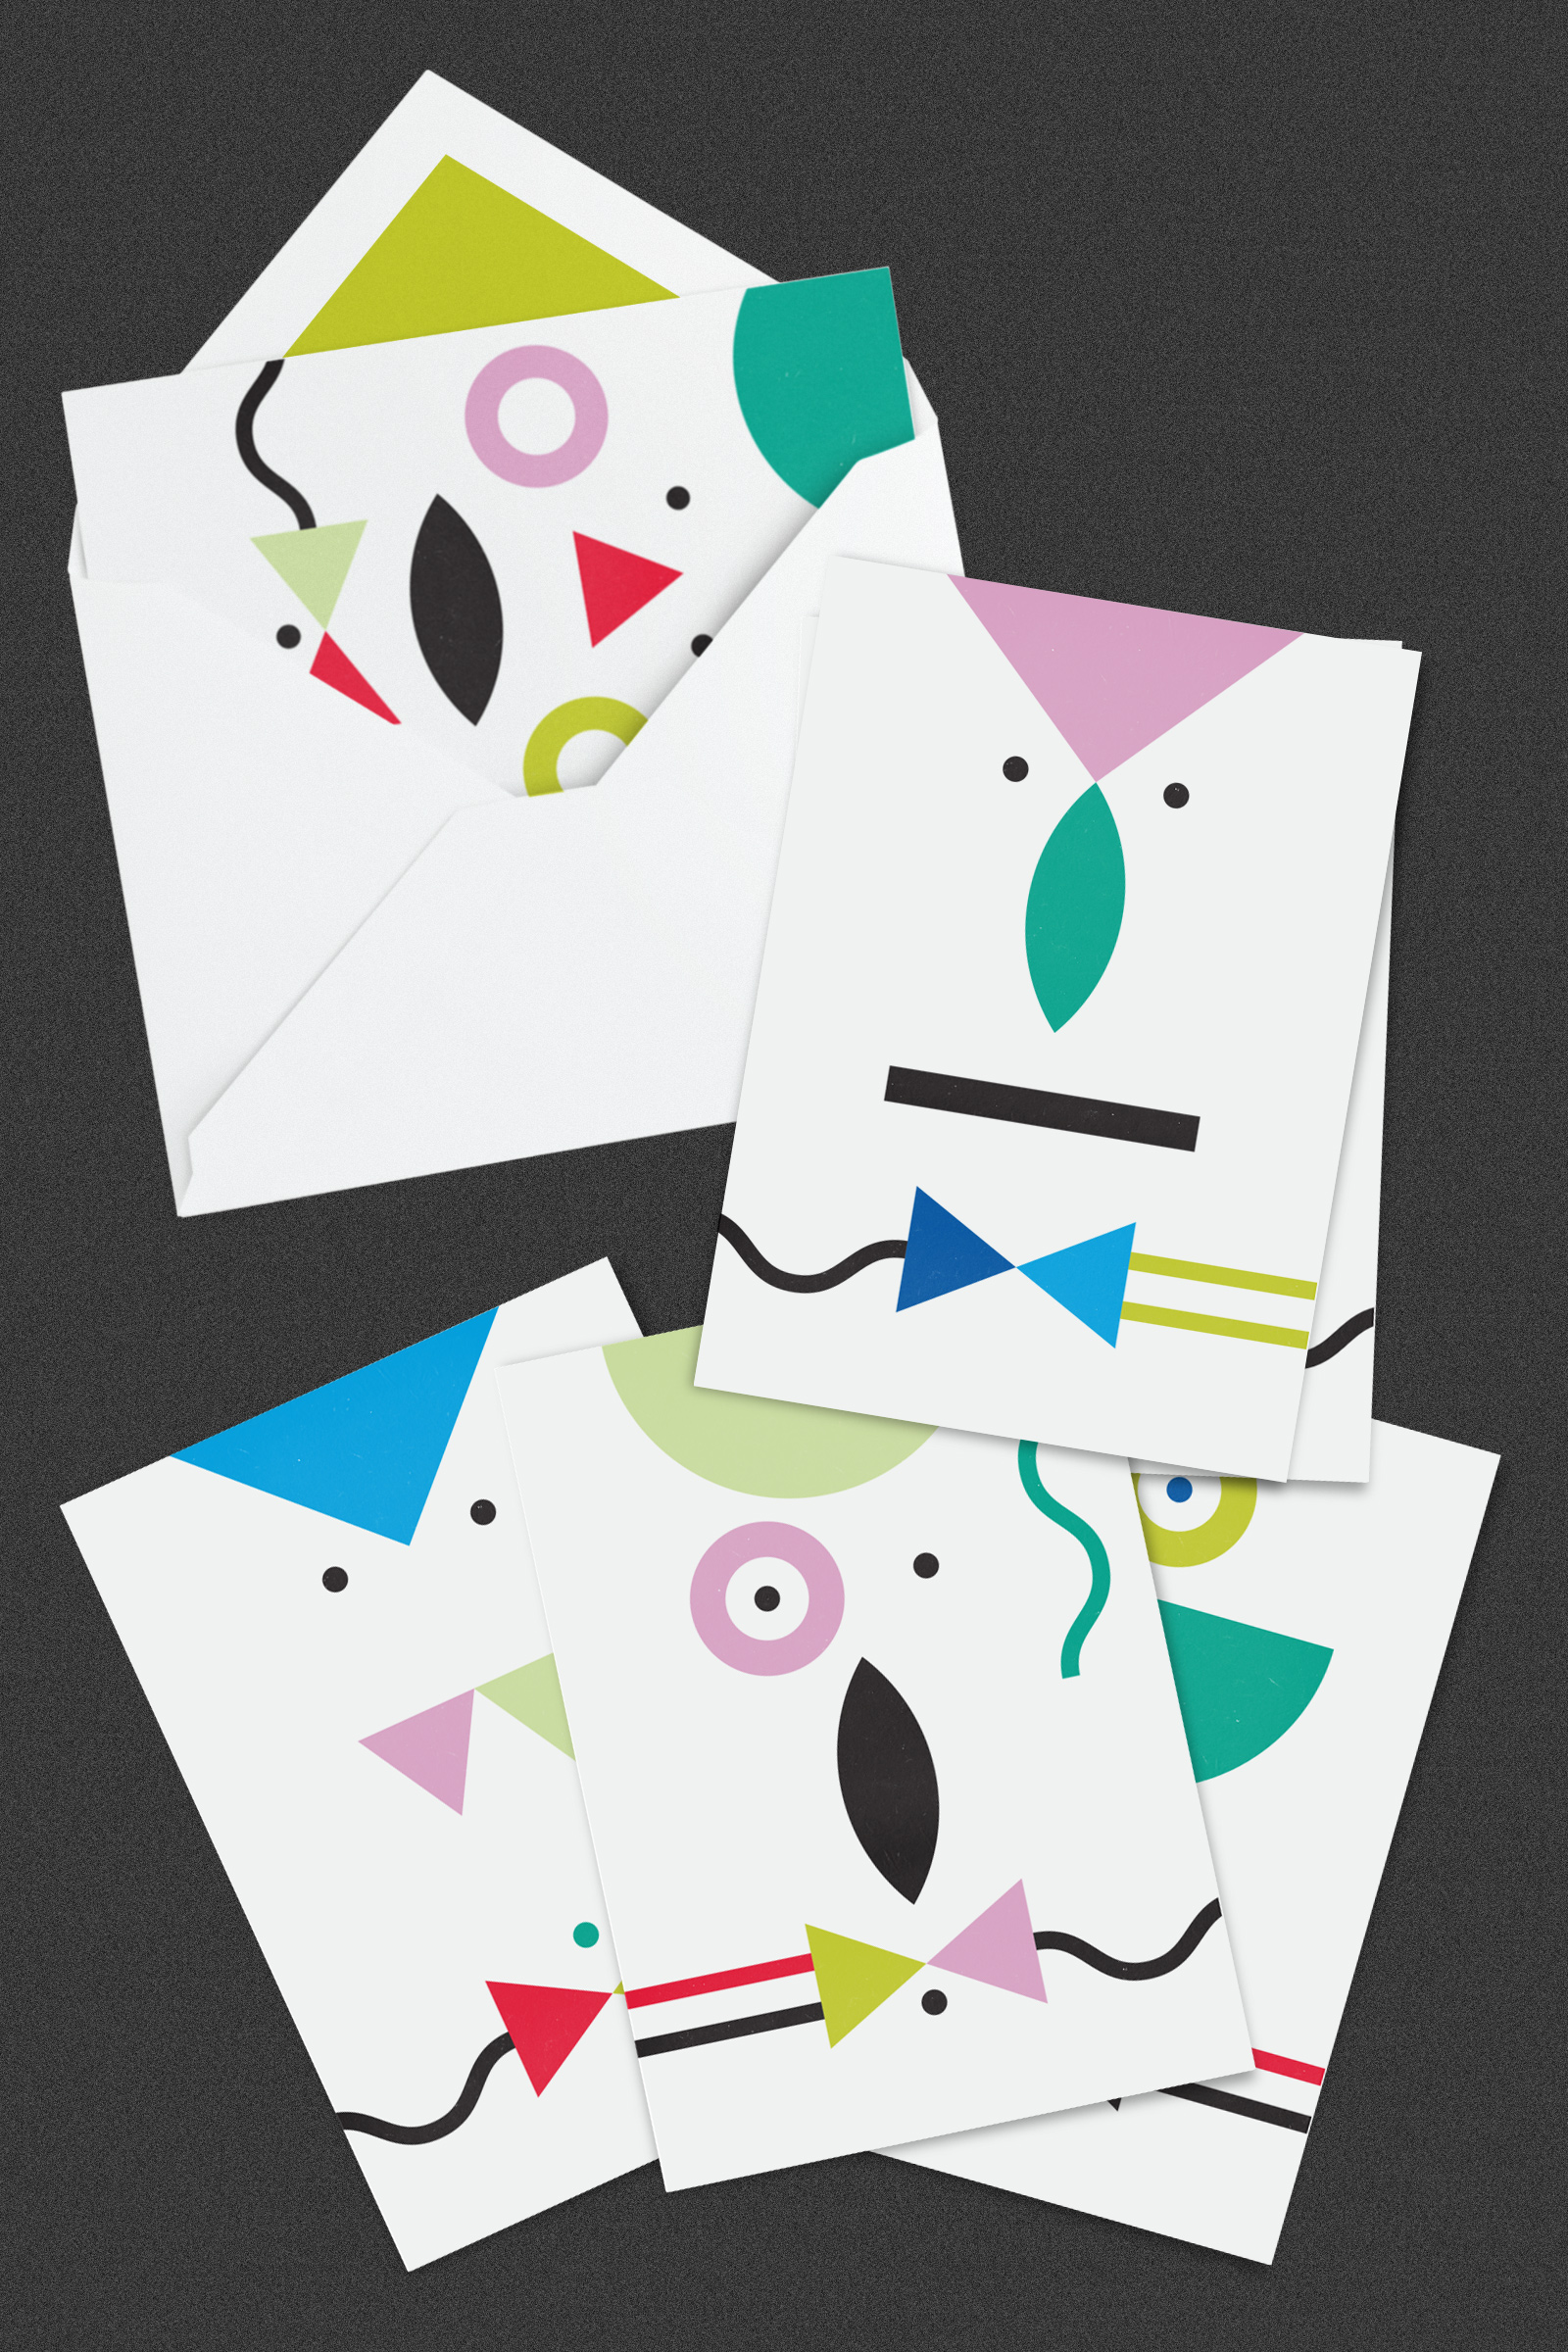 Stationery set of 6 designs with a green lining colour for the envelope